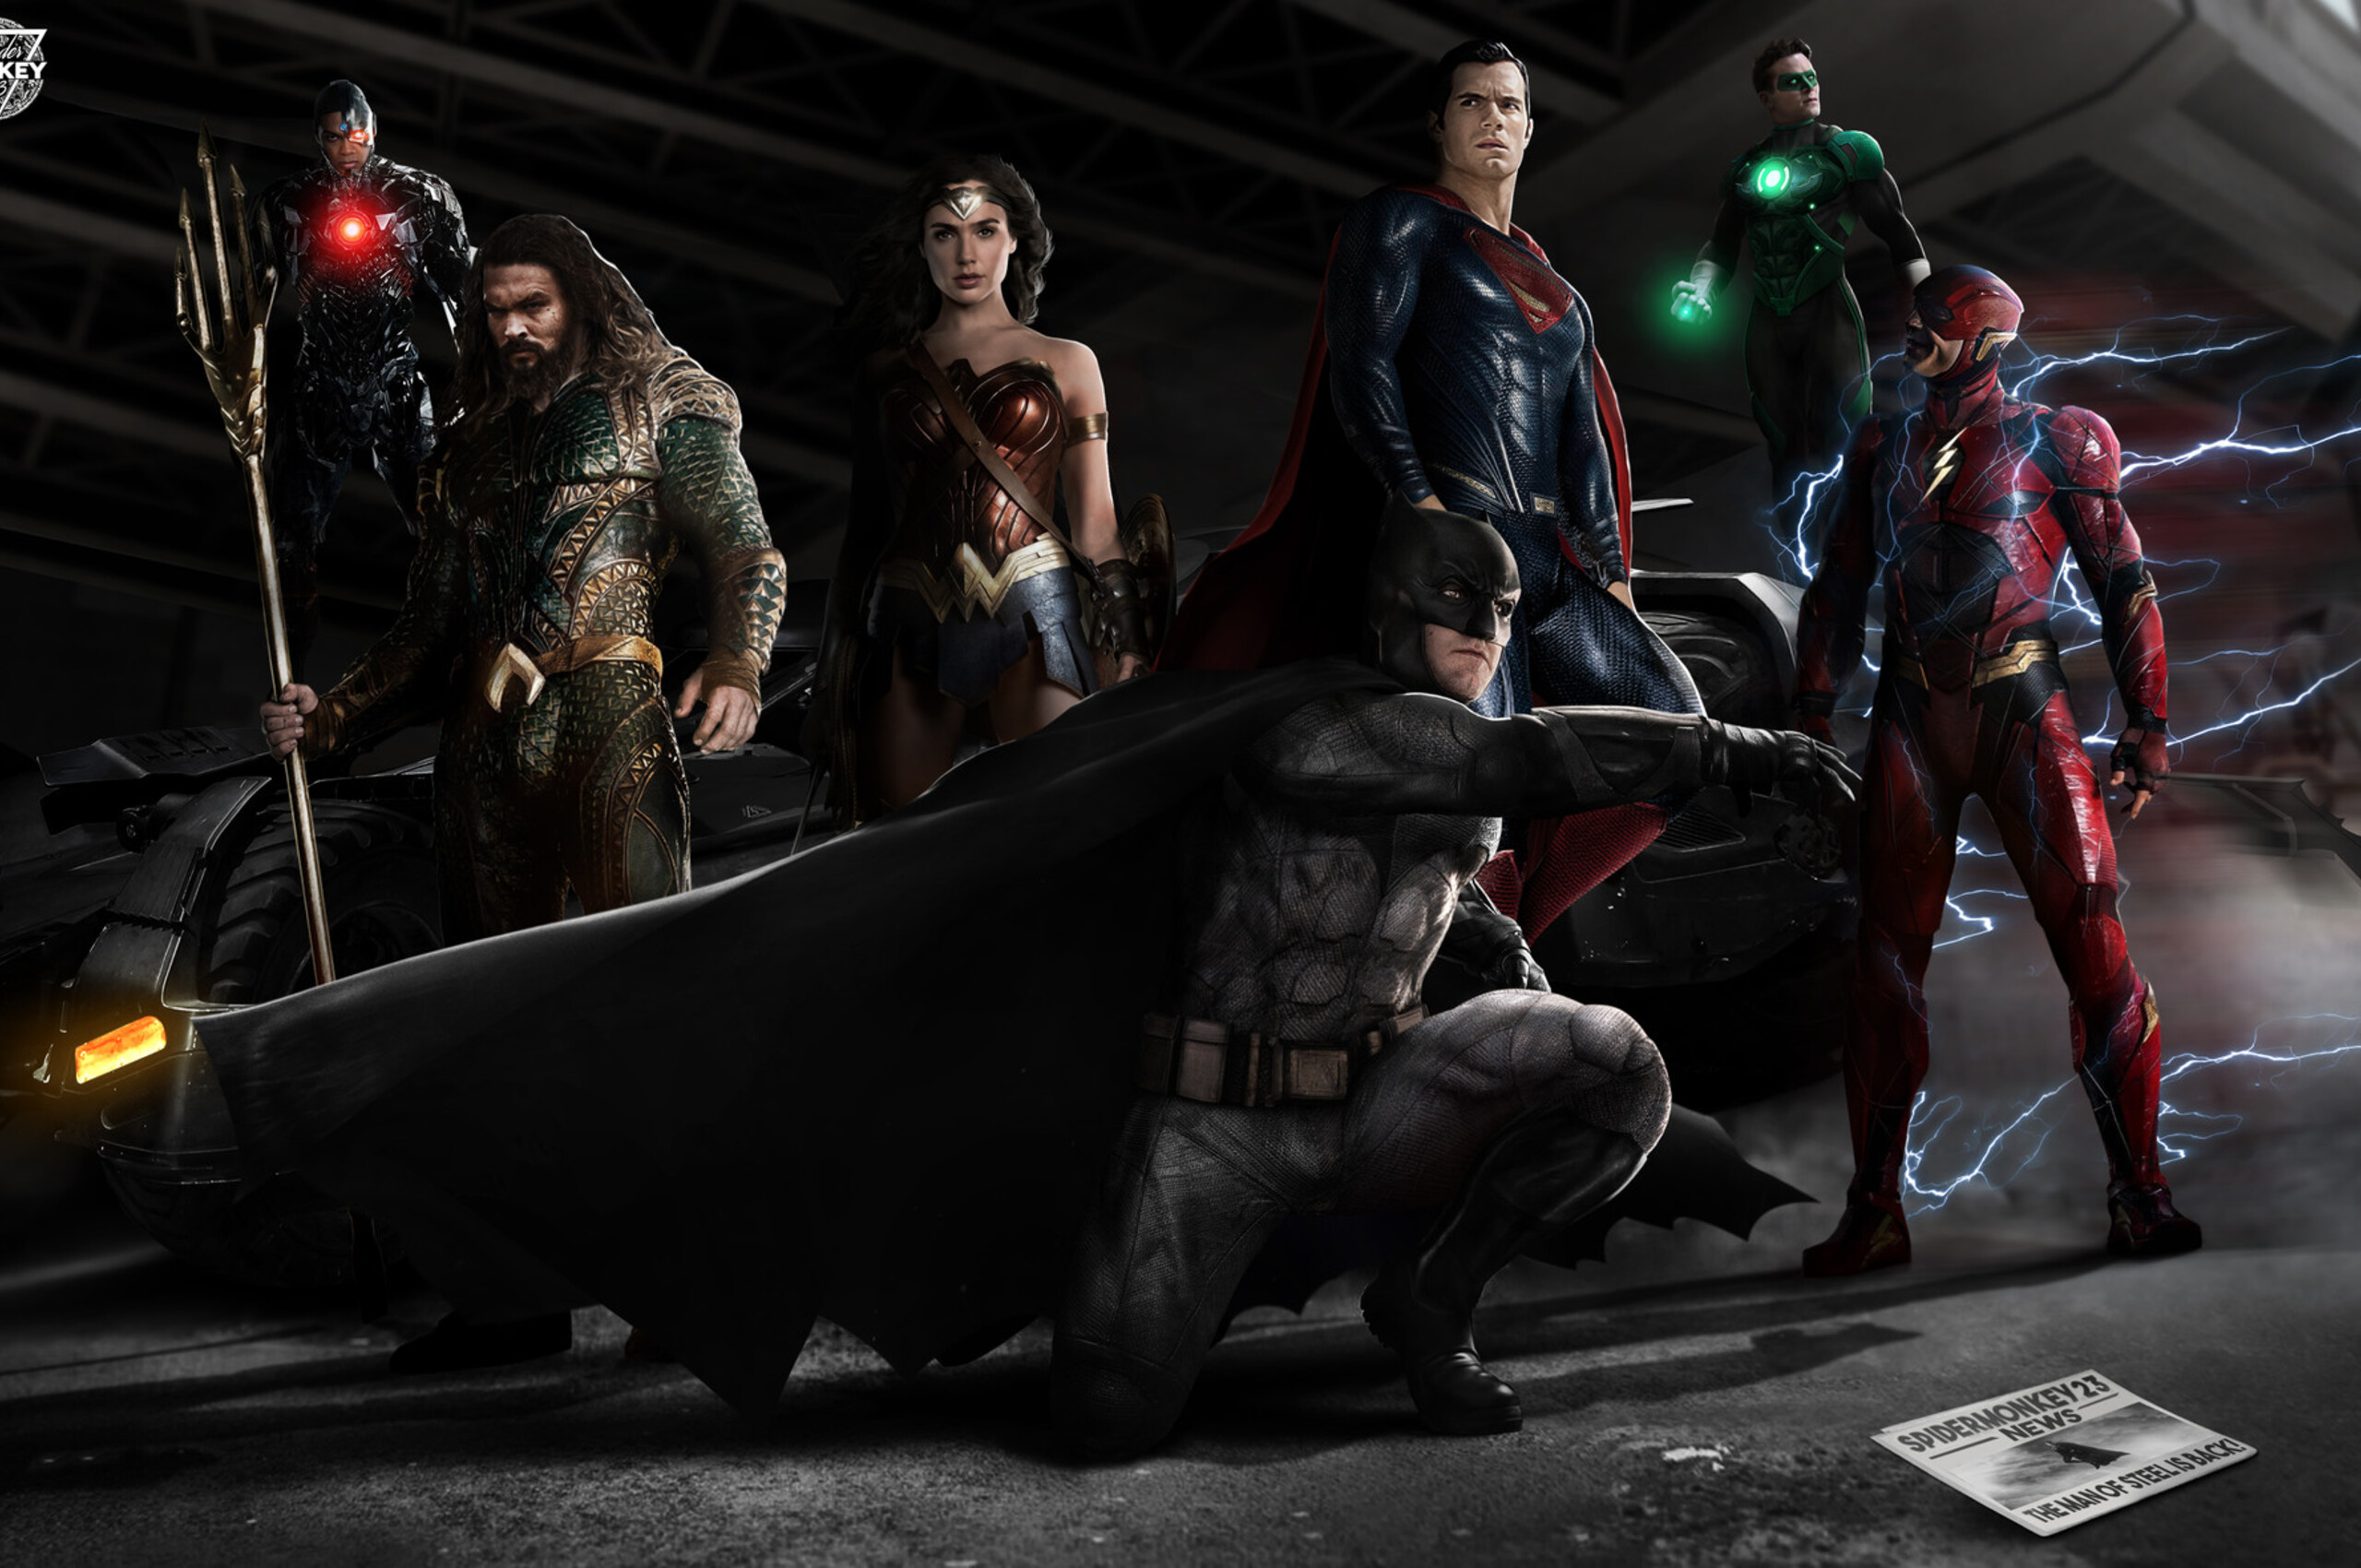 justice-league-fan-made-poster-m6.jpg